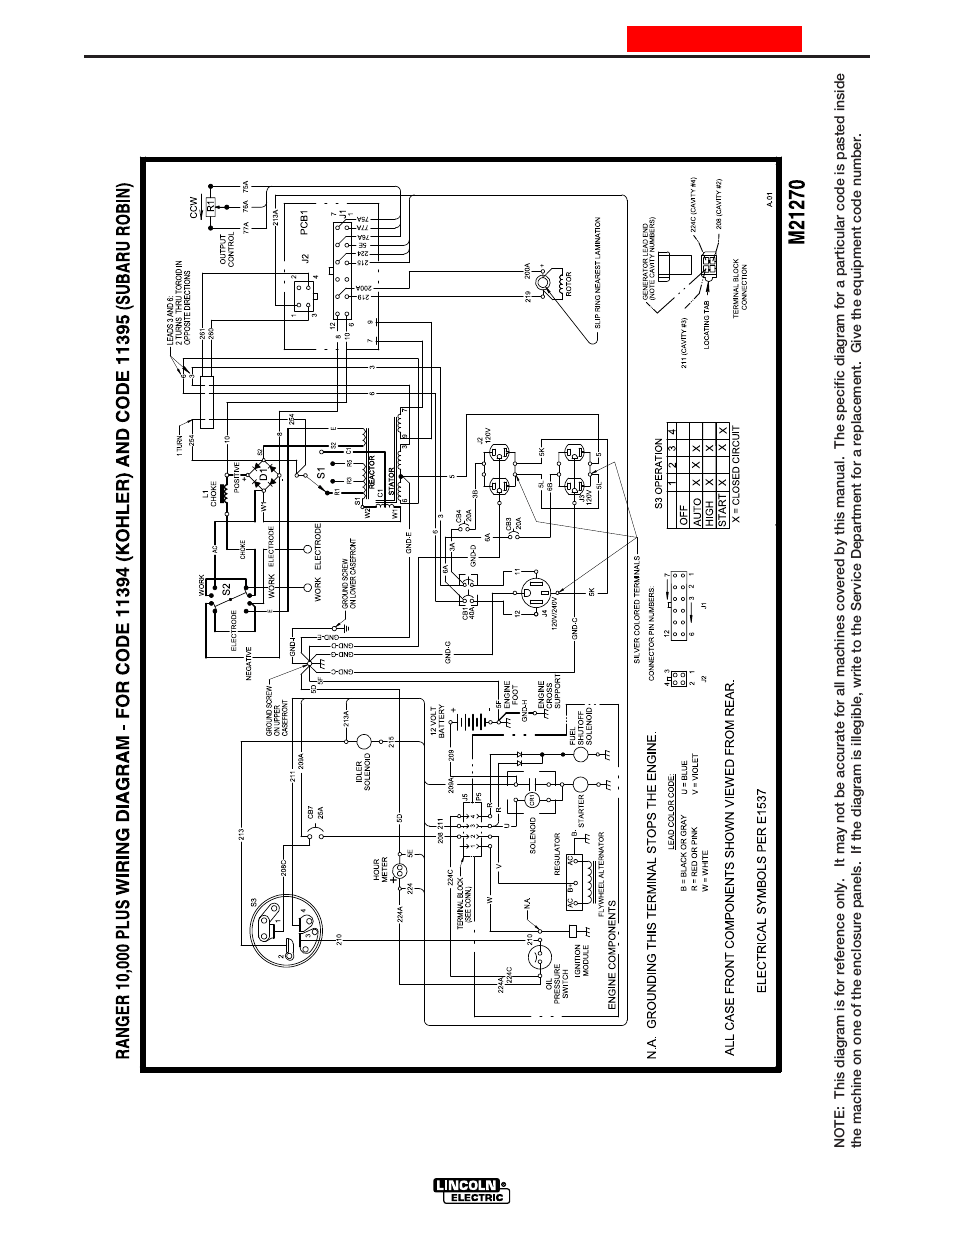 medium resolution of diagrams lincoln electric im925 ranger 10 000 plus user manual page 31 37